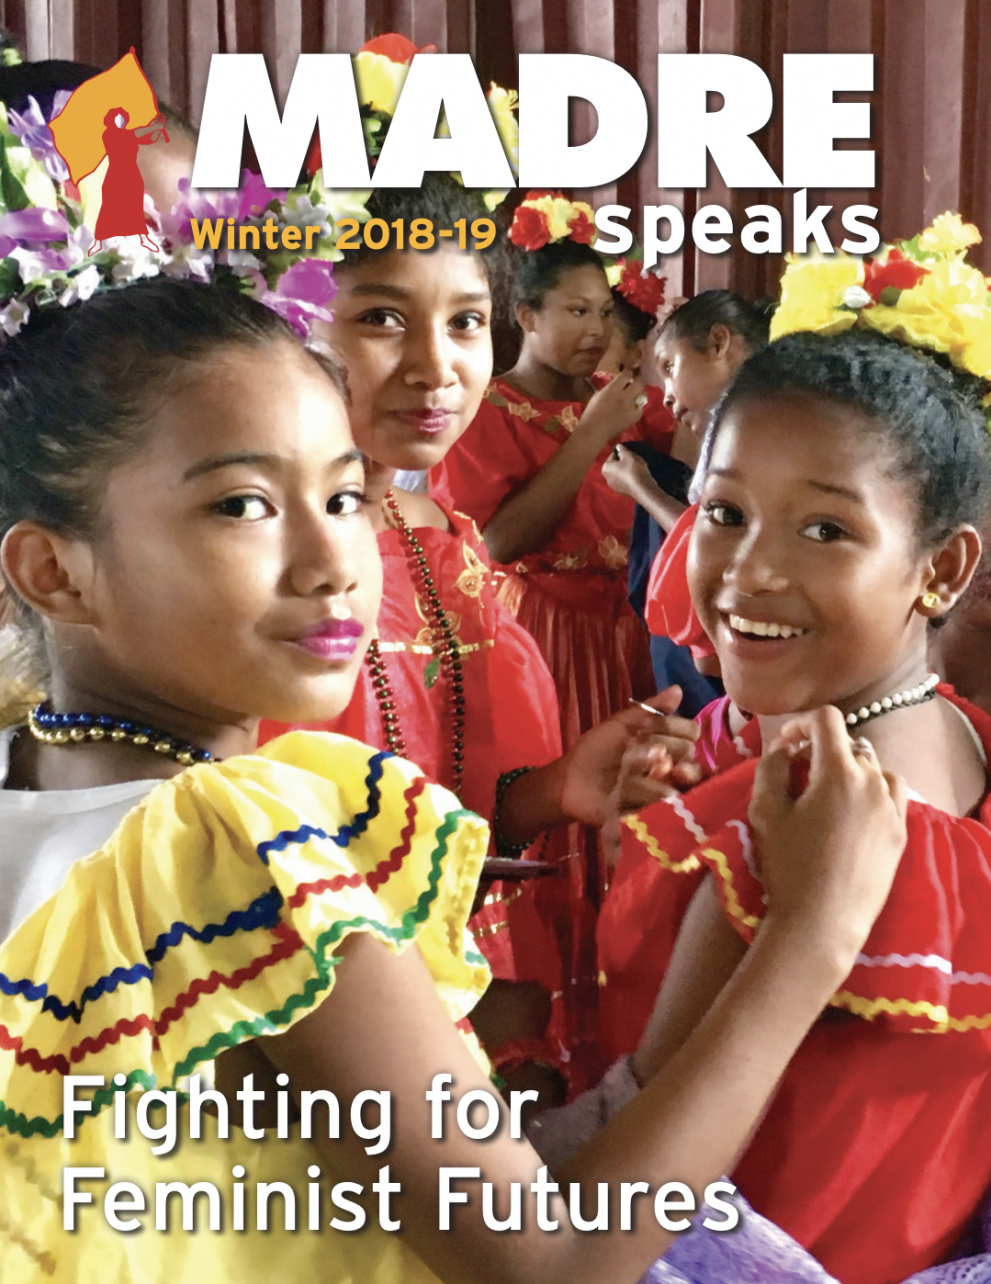 MADREspeaks Winter 2018-2019 Newsletter Cover. Young girls in traditional costume post for the camera after a performance.